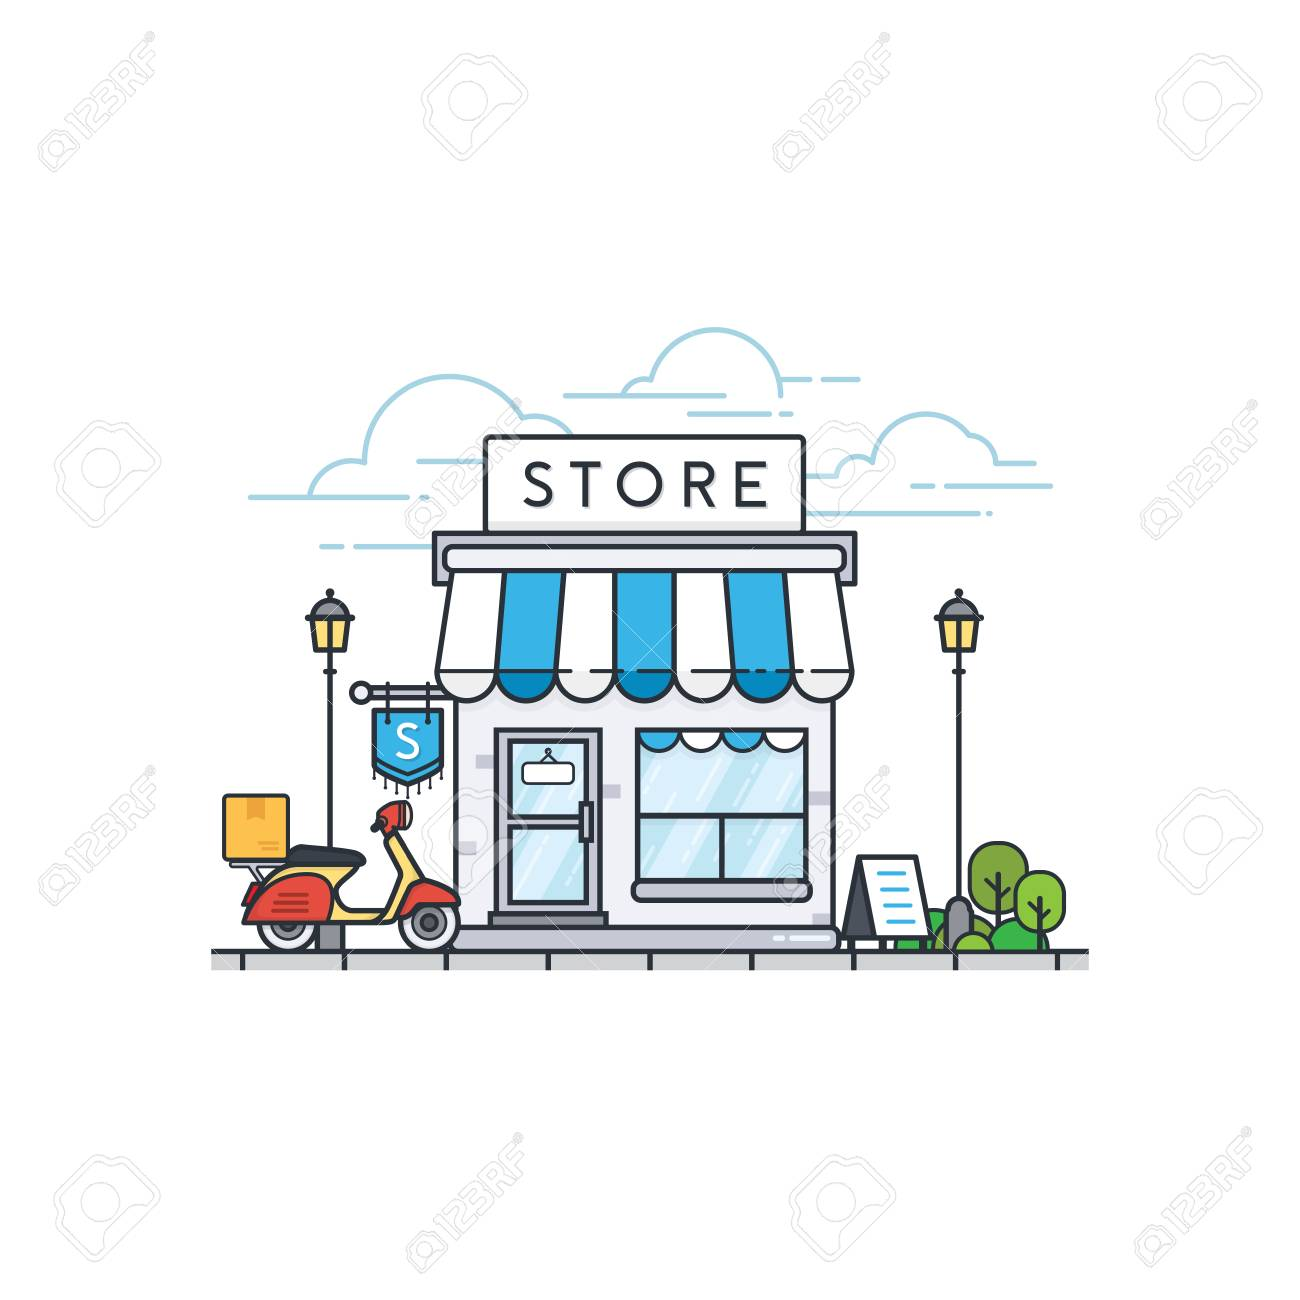 info for 787f8 d85f9 Online store building. Store front and scooter delivery. Street..